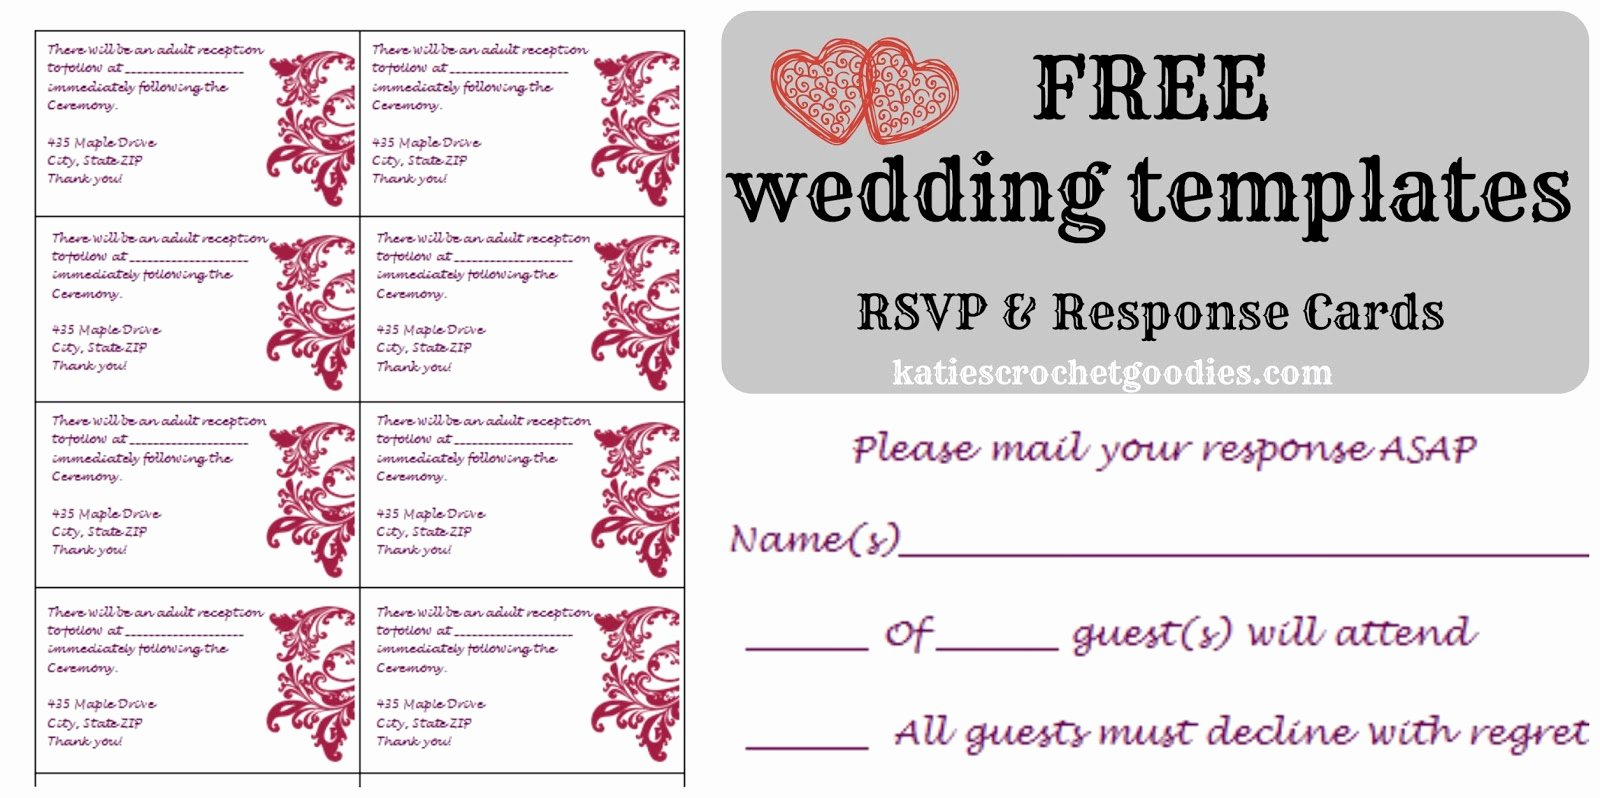 Wedding Rsvp Cards Template Fresh Free Wedding Templates Rsvp & Reception Cards Katie S